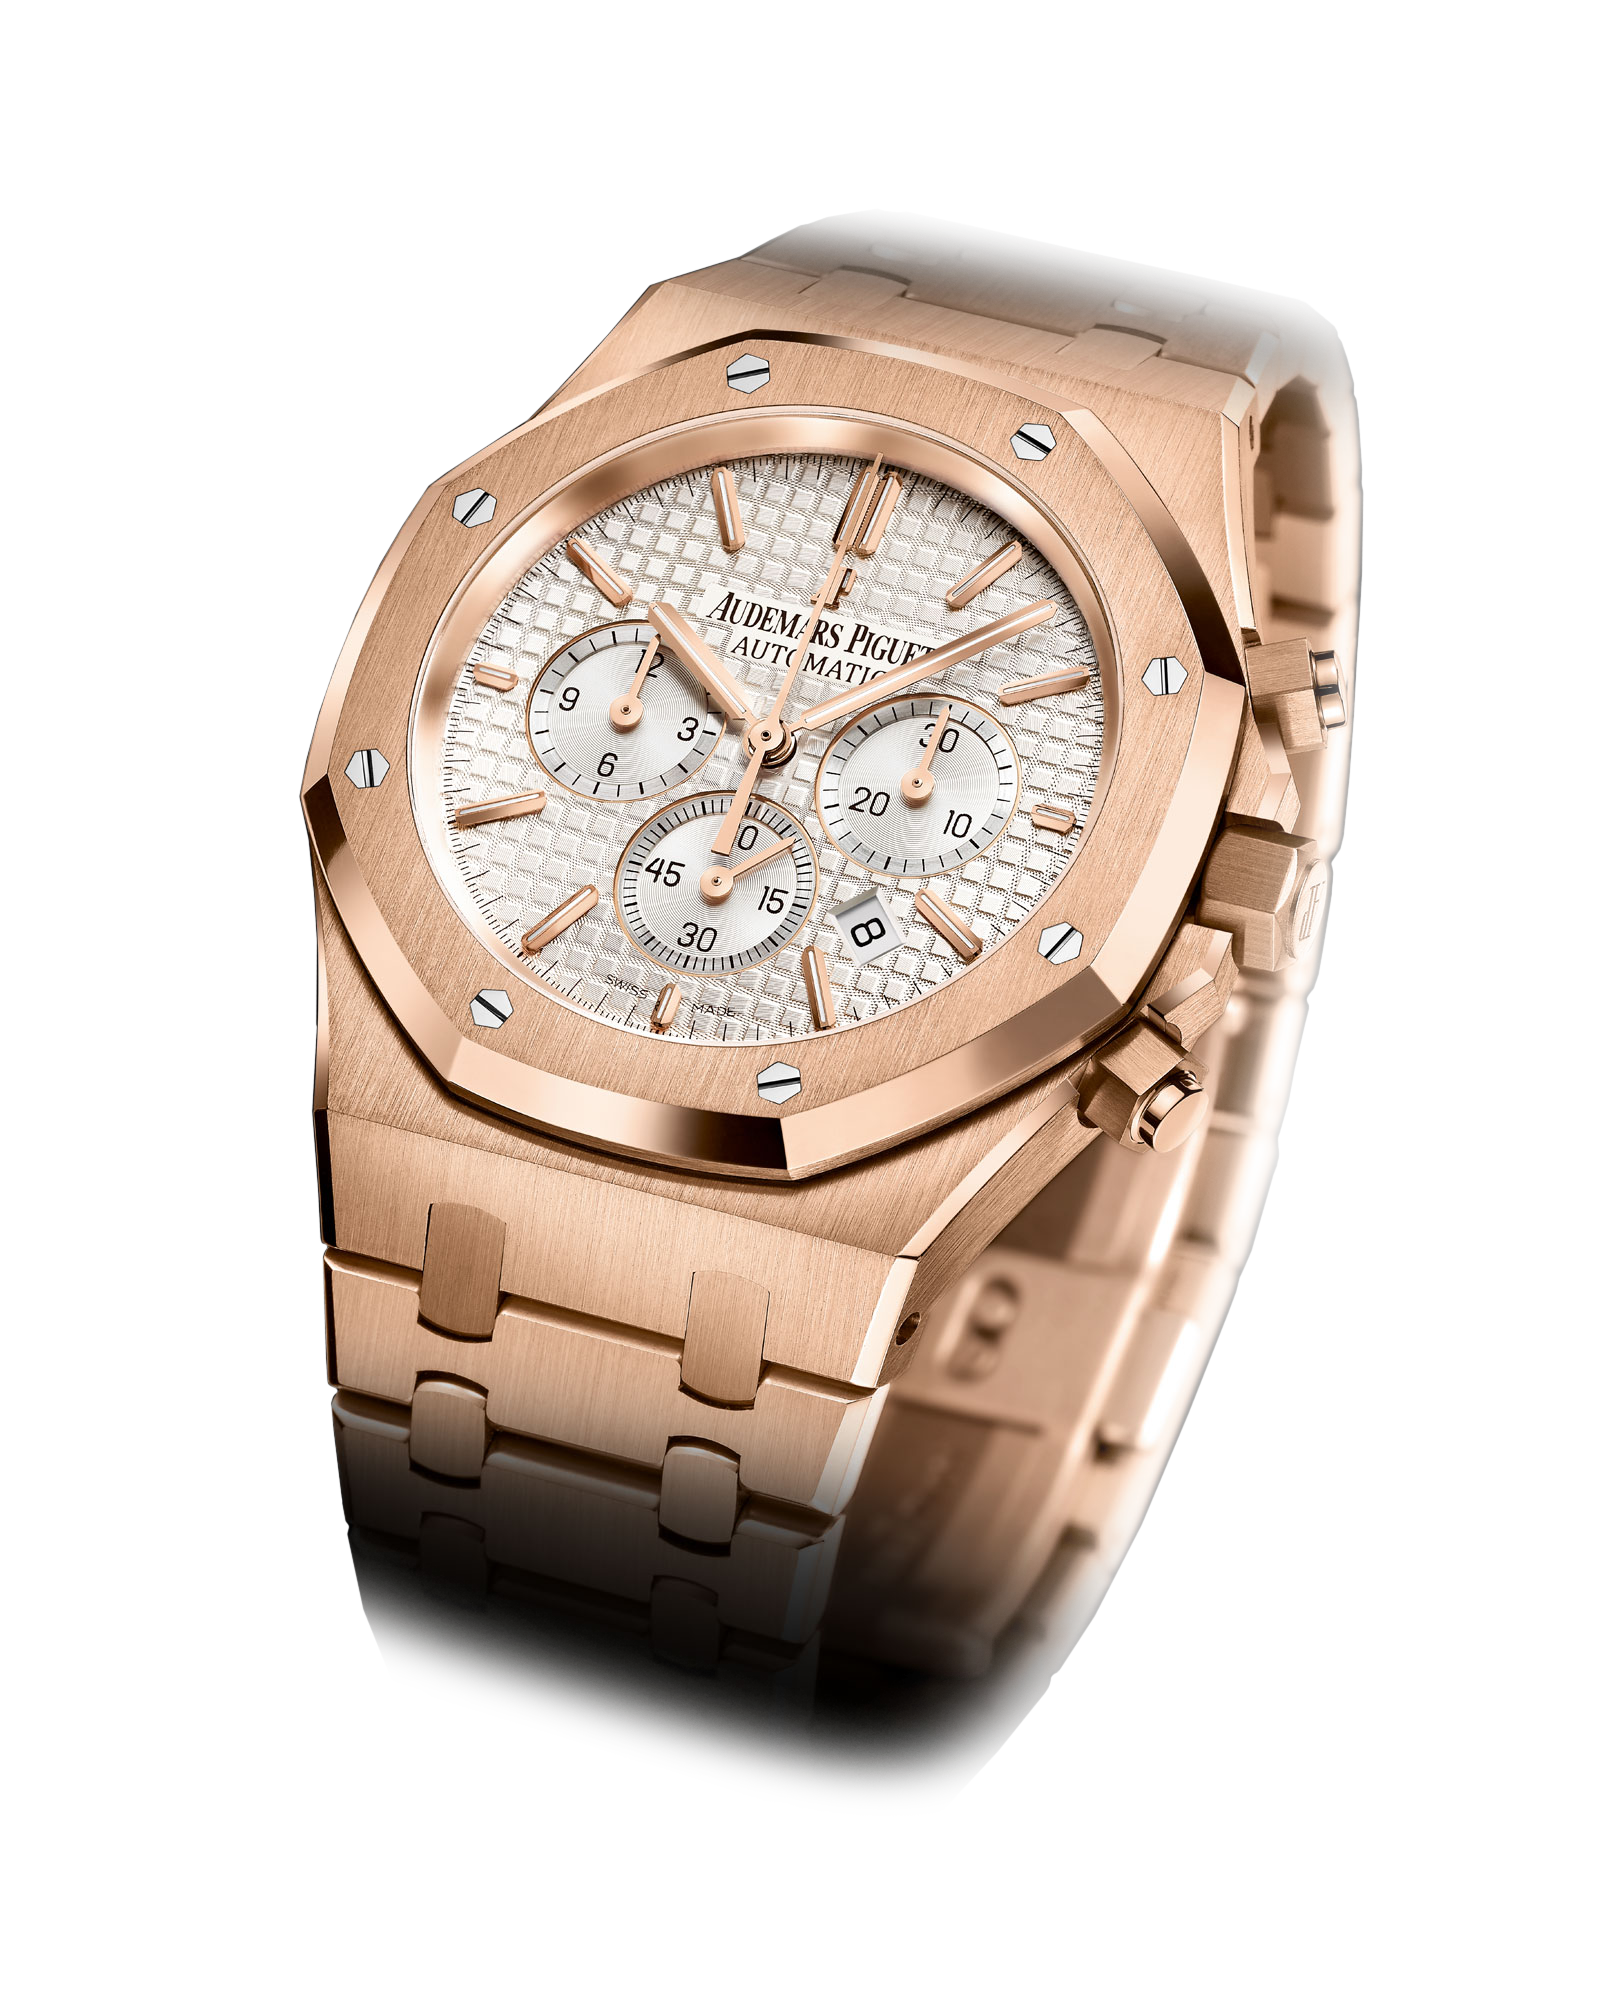 Audemars Piguet Chronograph 26320OR.OO.1220OR.02